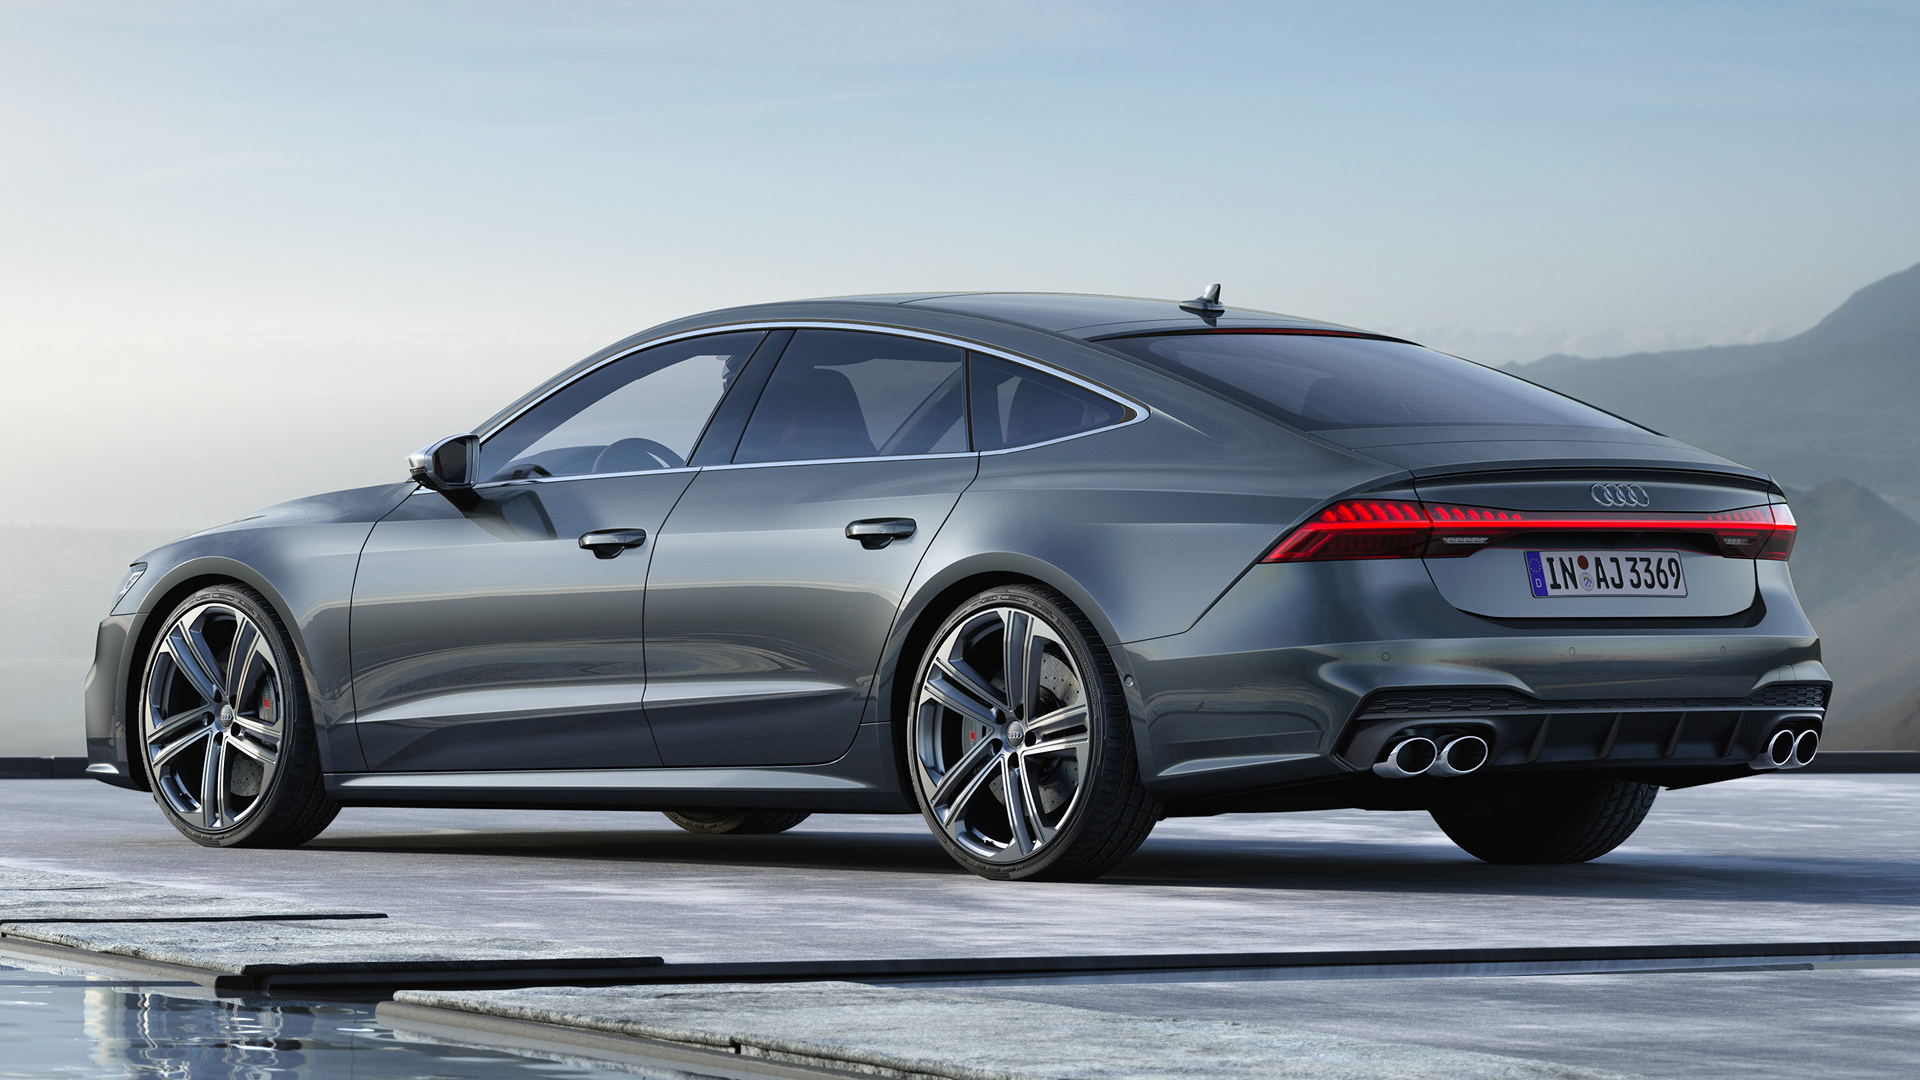 2019 Audi S7 Sportback - Wallpapers and HD Images | Car Pixel